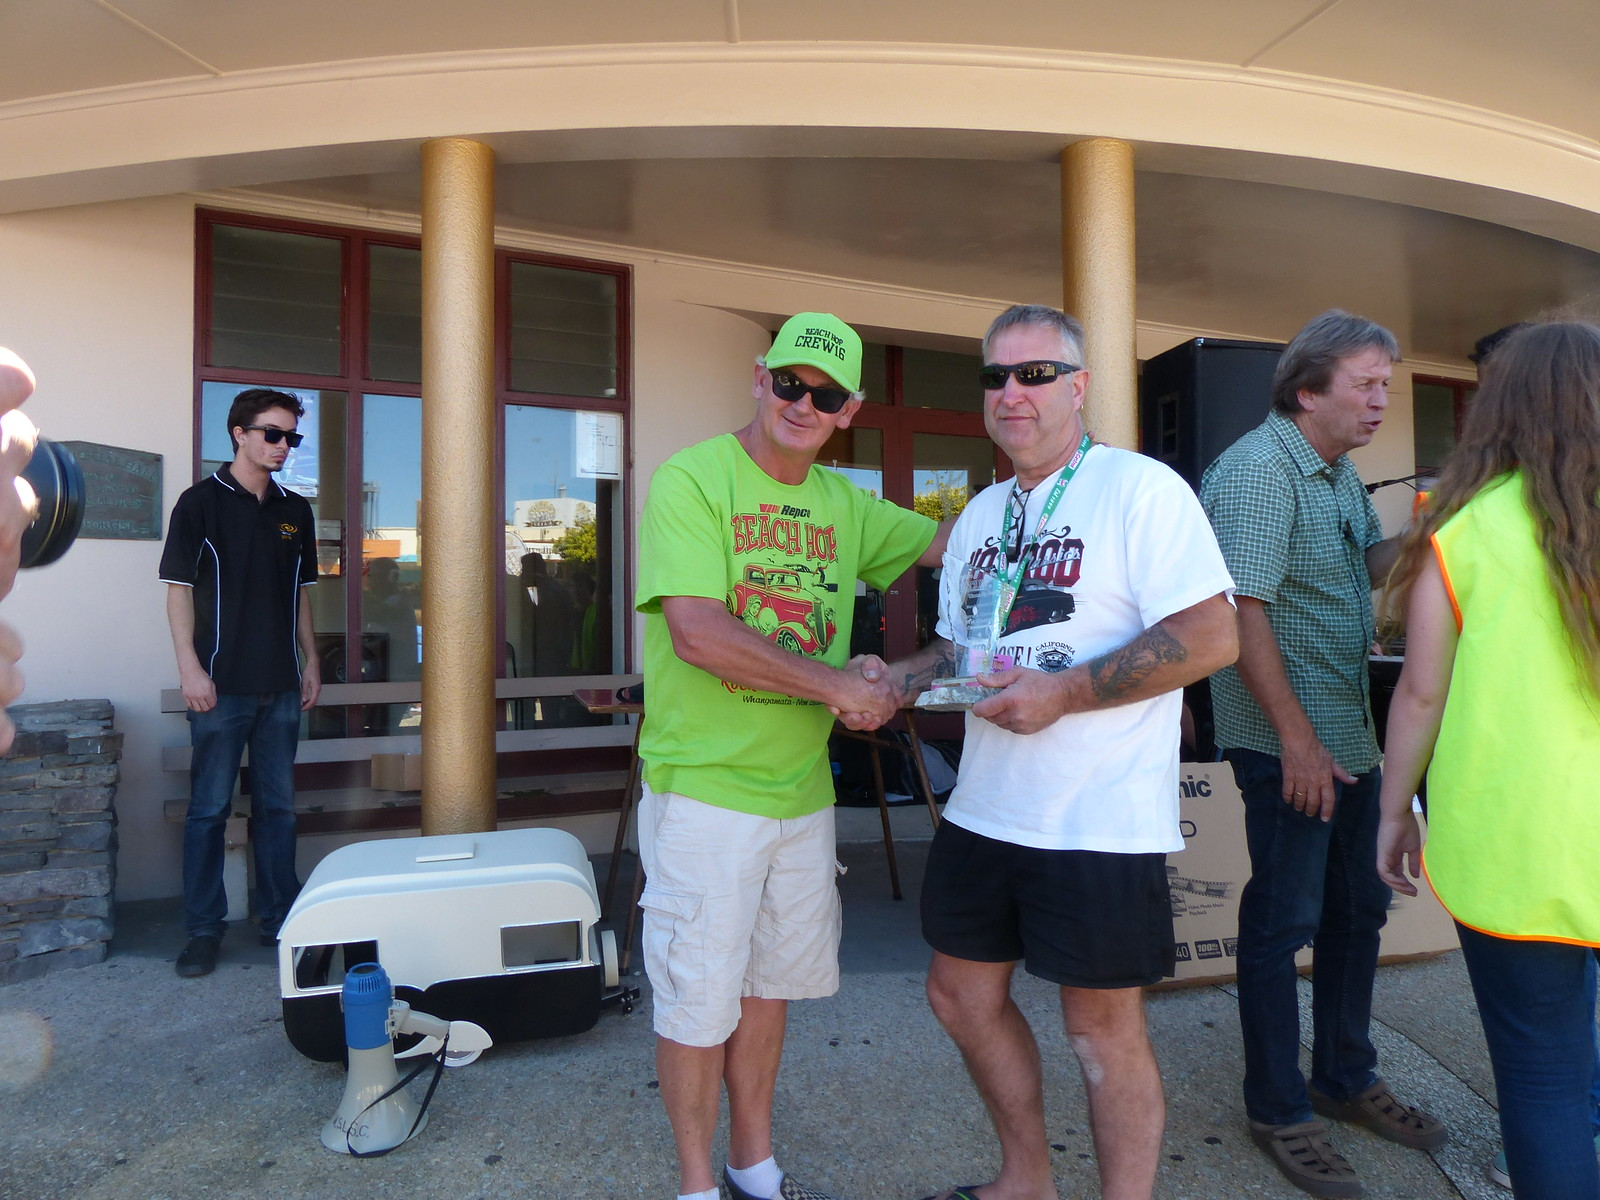 Waihi Beach Hop Prize Giving Miner's Choice Hot Rod